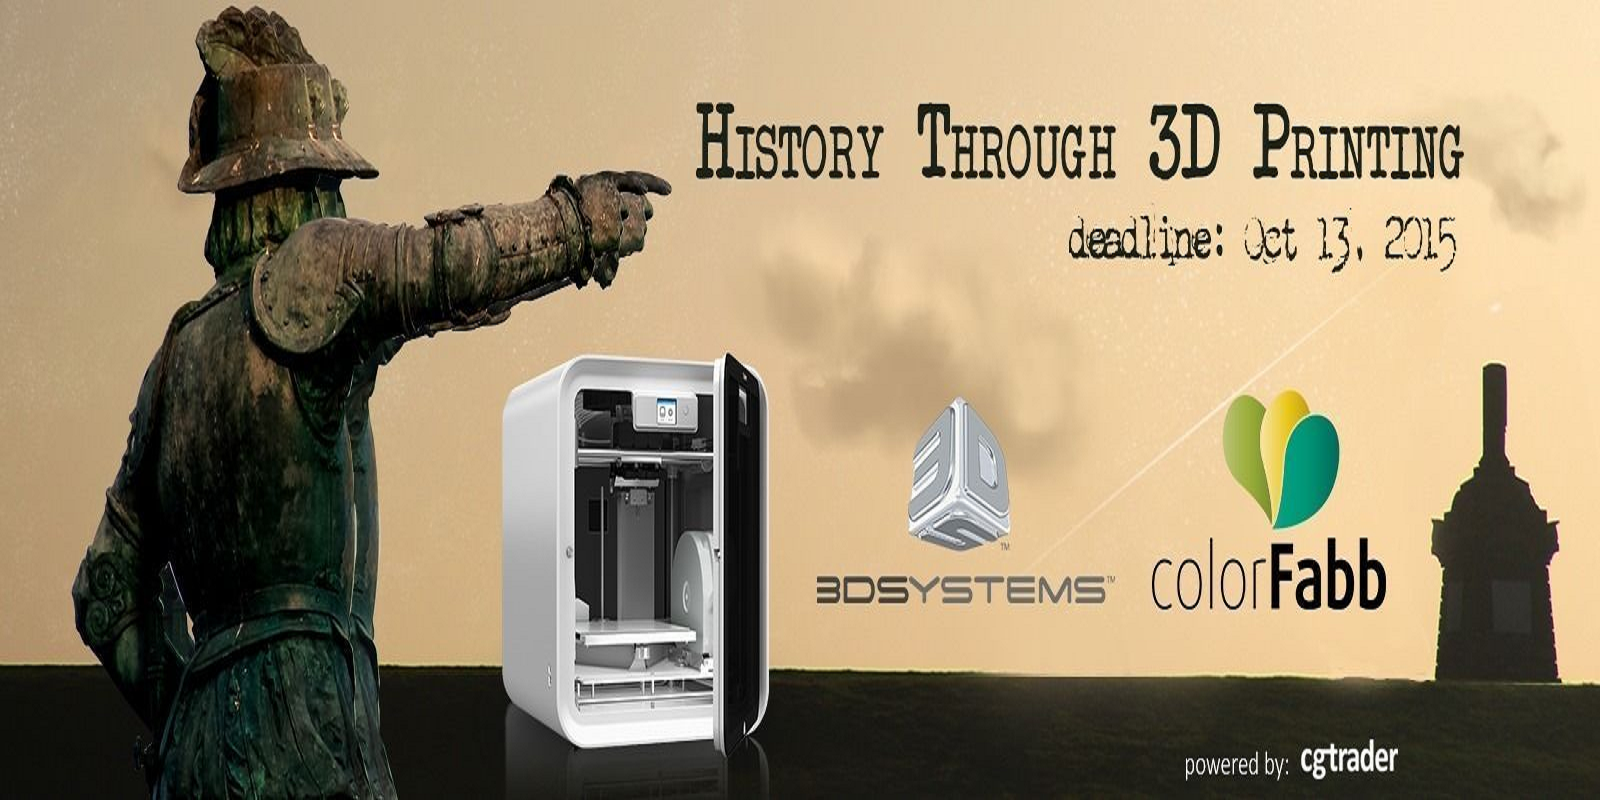 'History Through 3D Printing Challenge' Contest from CGTrader Focuses on Presidents & Architectural Styles